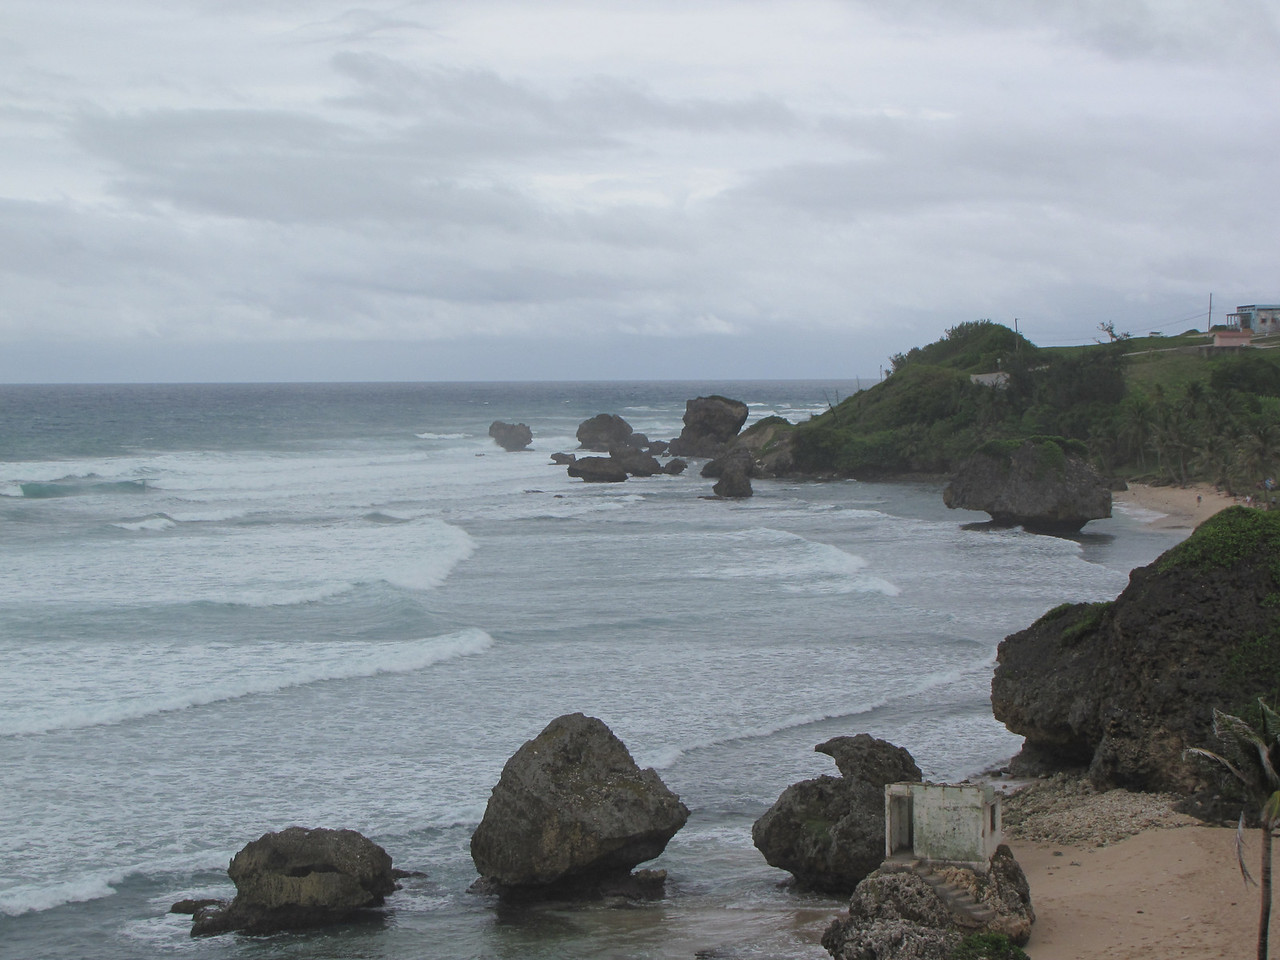 Since it is on the Atlantic side of the island, the surf is pretty rough, but it is a beautiful place.